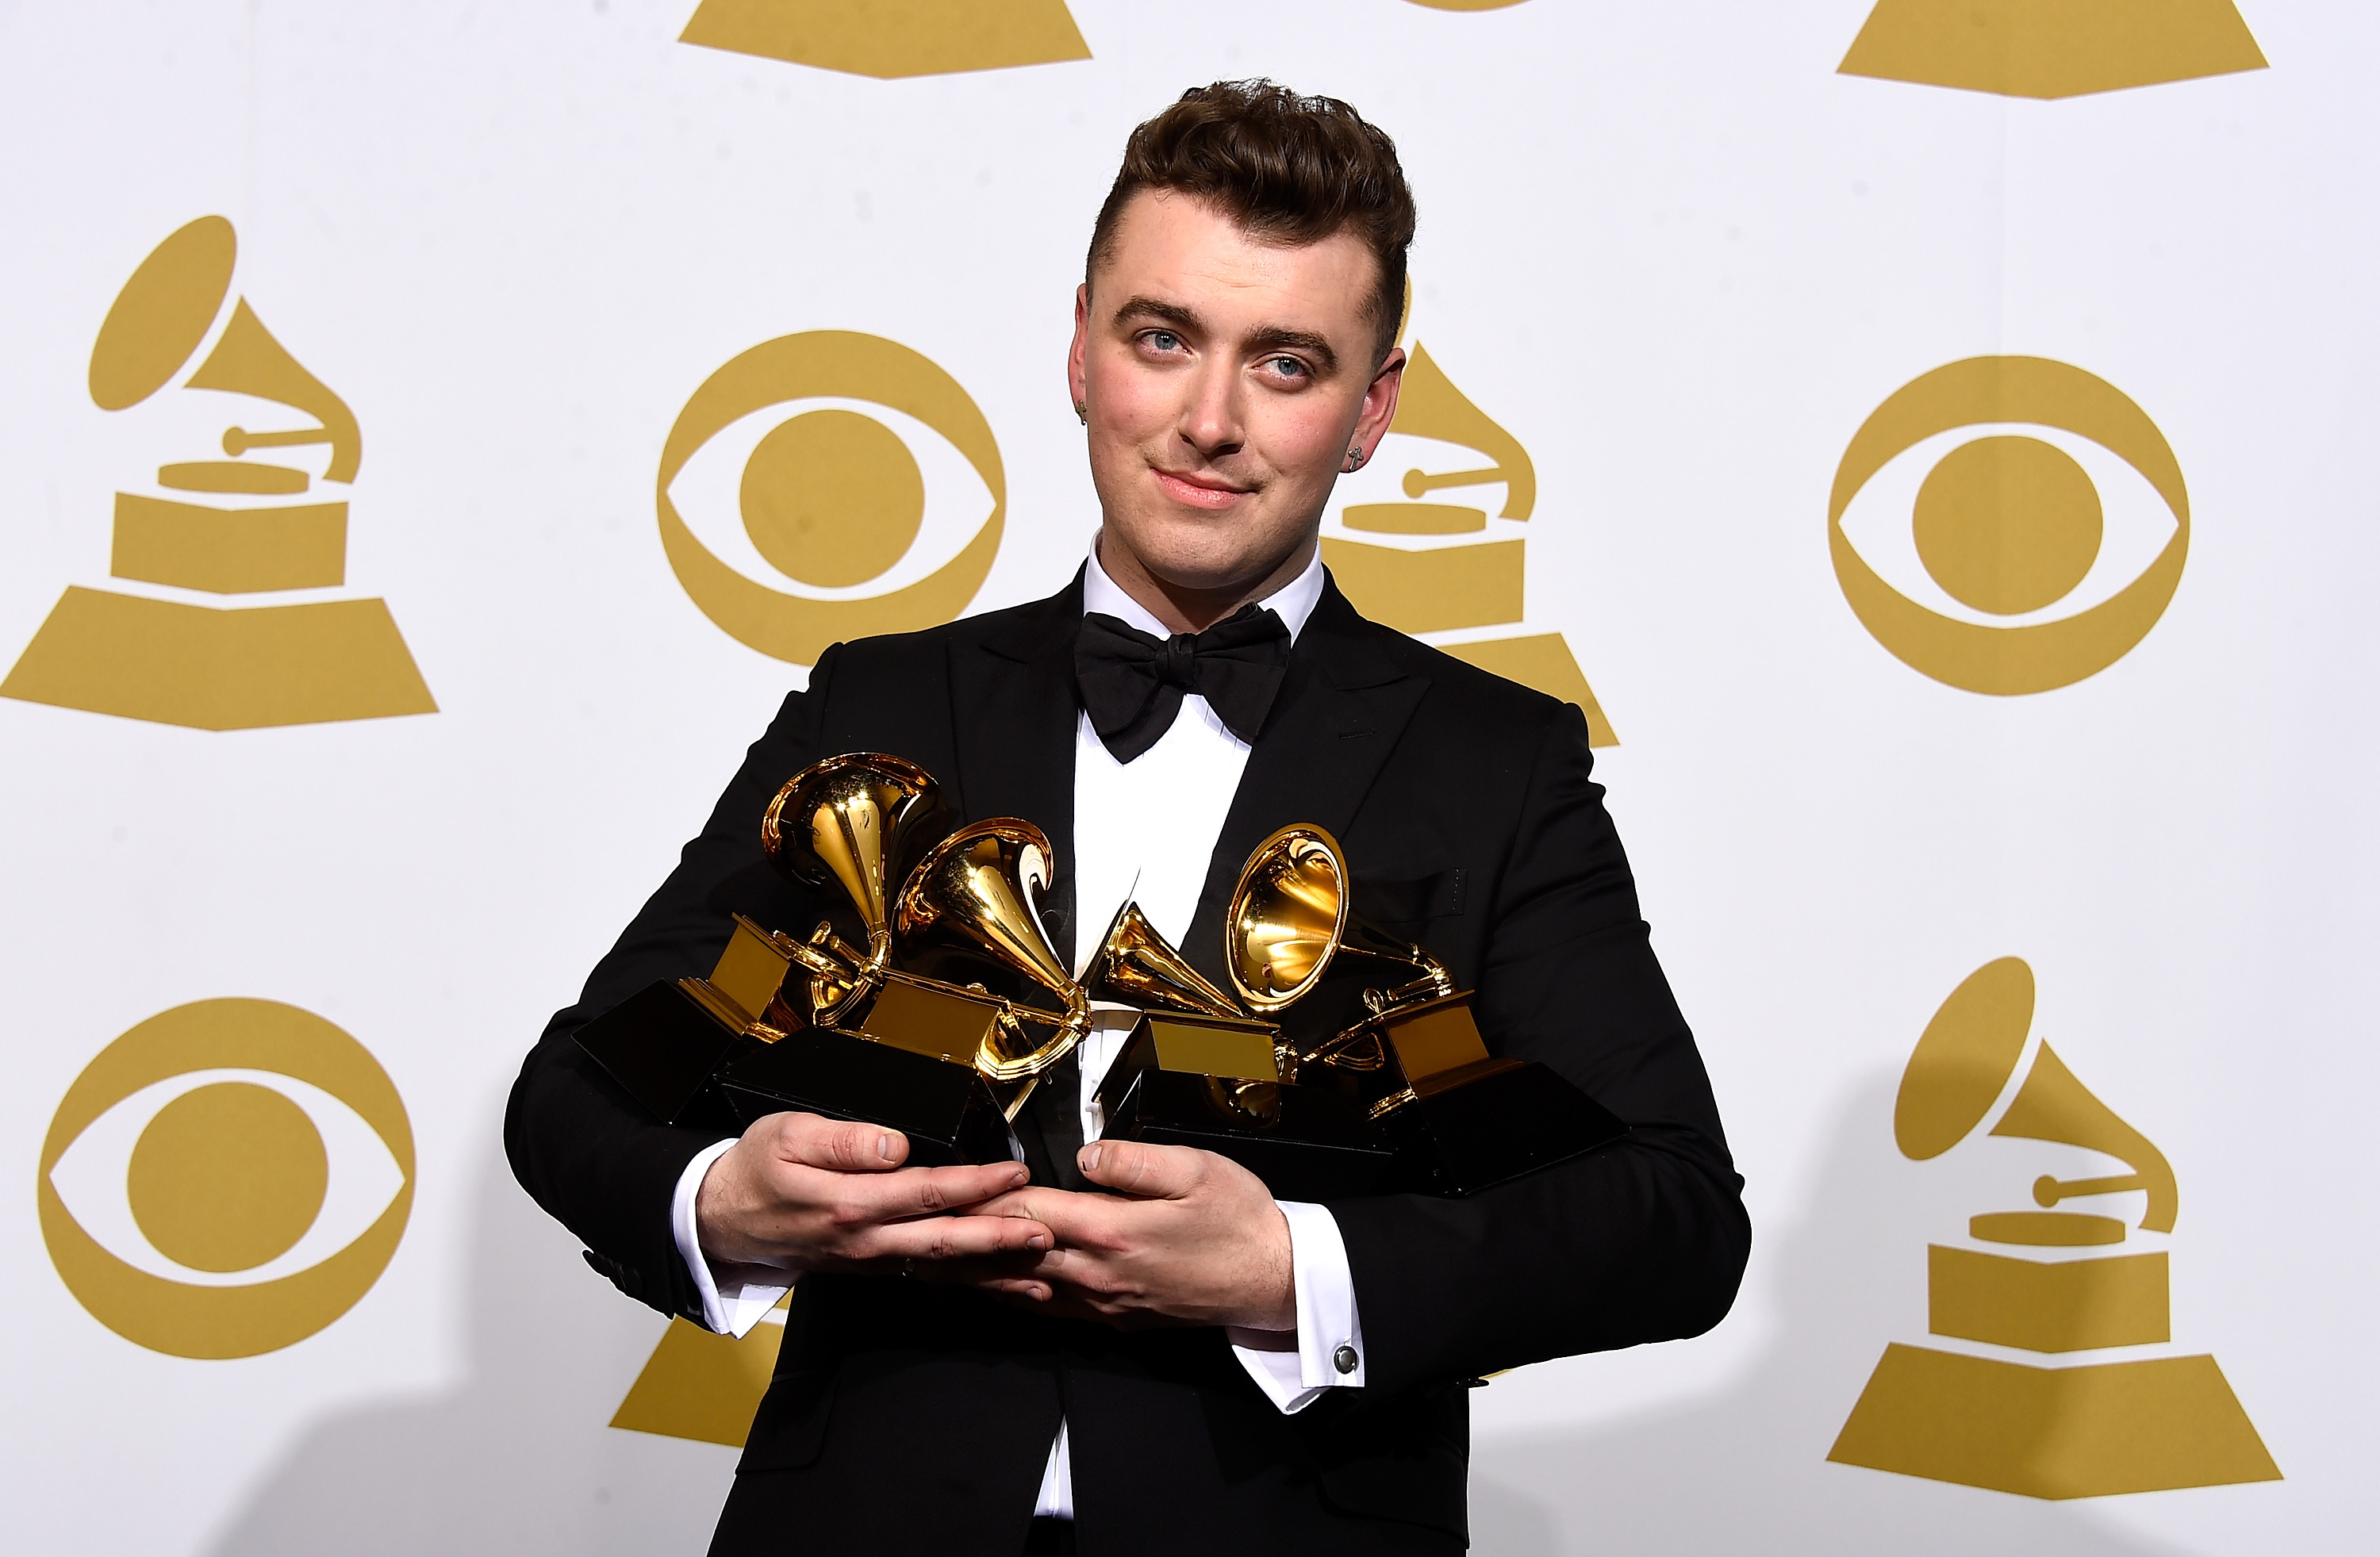 Grammys: Why The Grammys Have So Many Categories